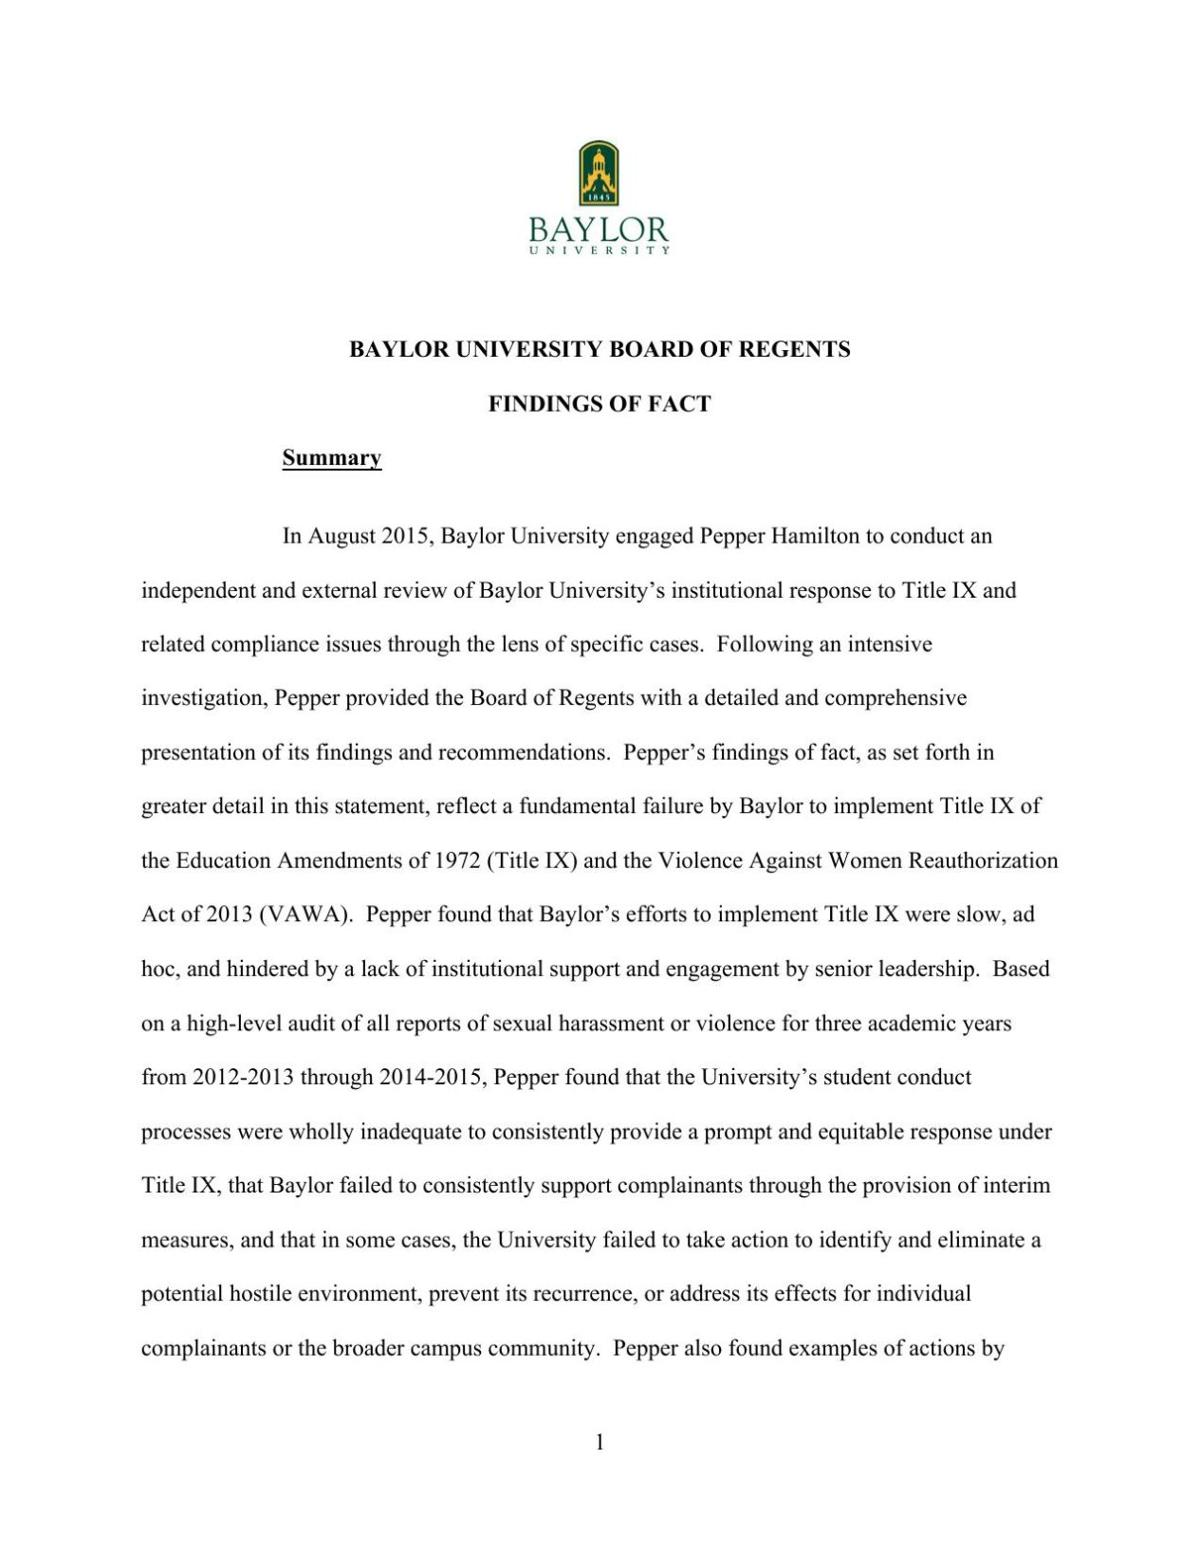 Baylor Board of Regents findings of fact based on Pepper Hamilton report